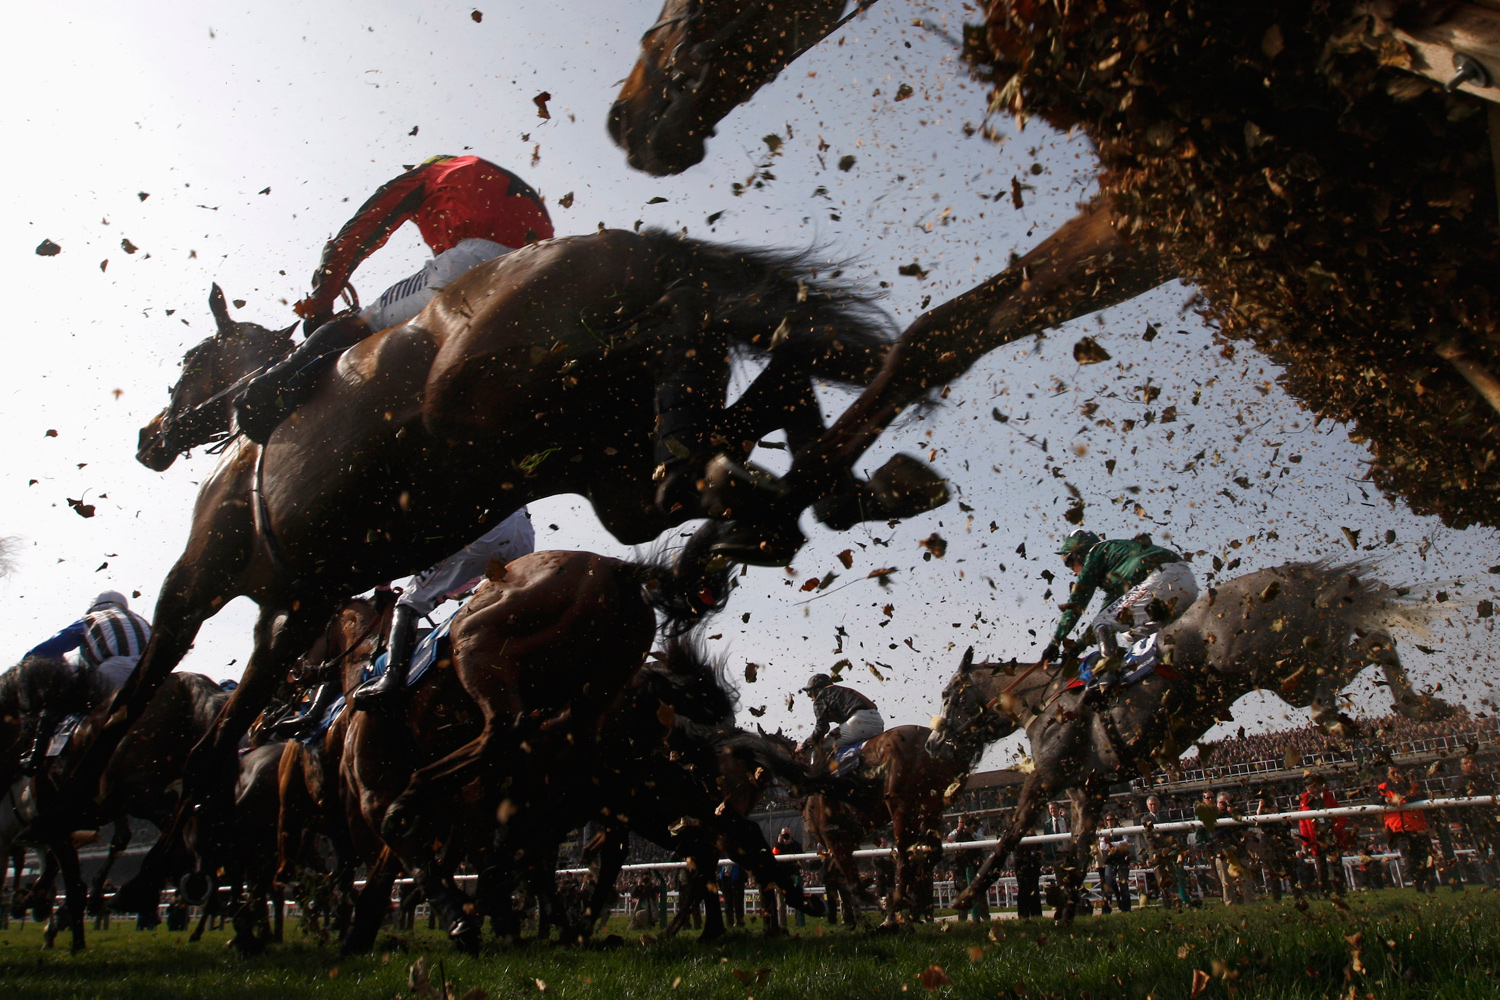 March 17, 2011. Horses jump a fence in The Pertemps Final during the Cheltenham Festival horse racing meet in Gloucestershire, western England.